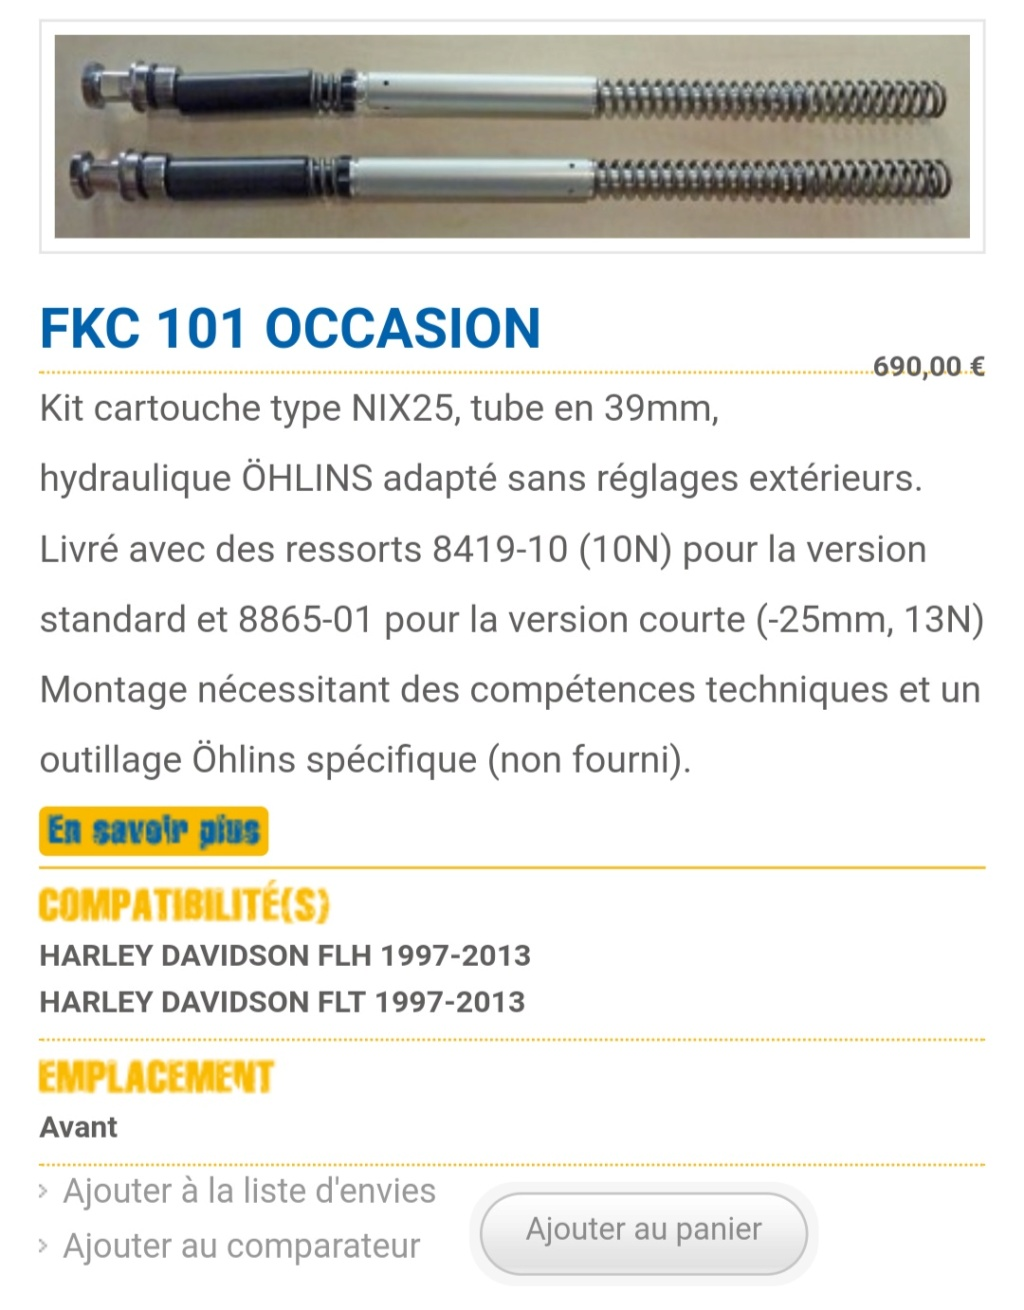 Amortisseur ohlins electra classic 2003 / limited 2014 - Page 3 Img_2251